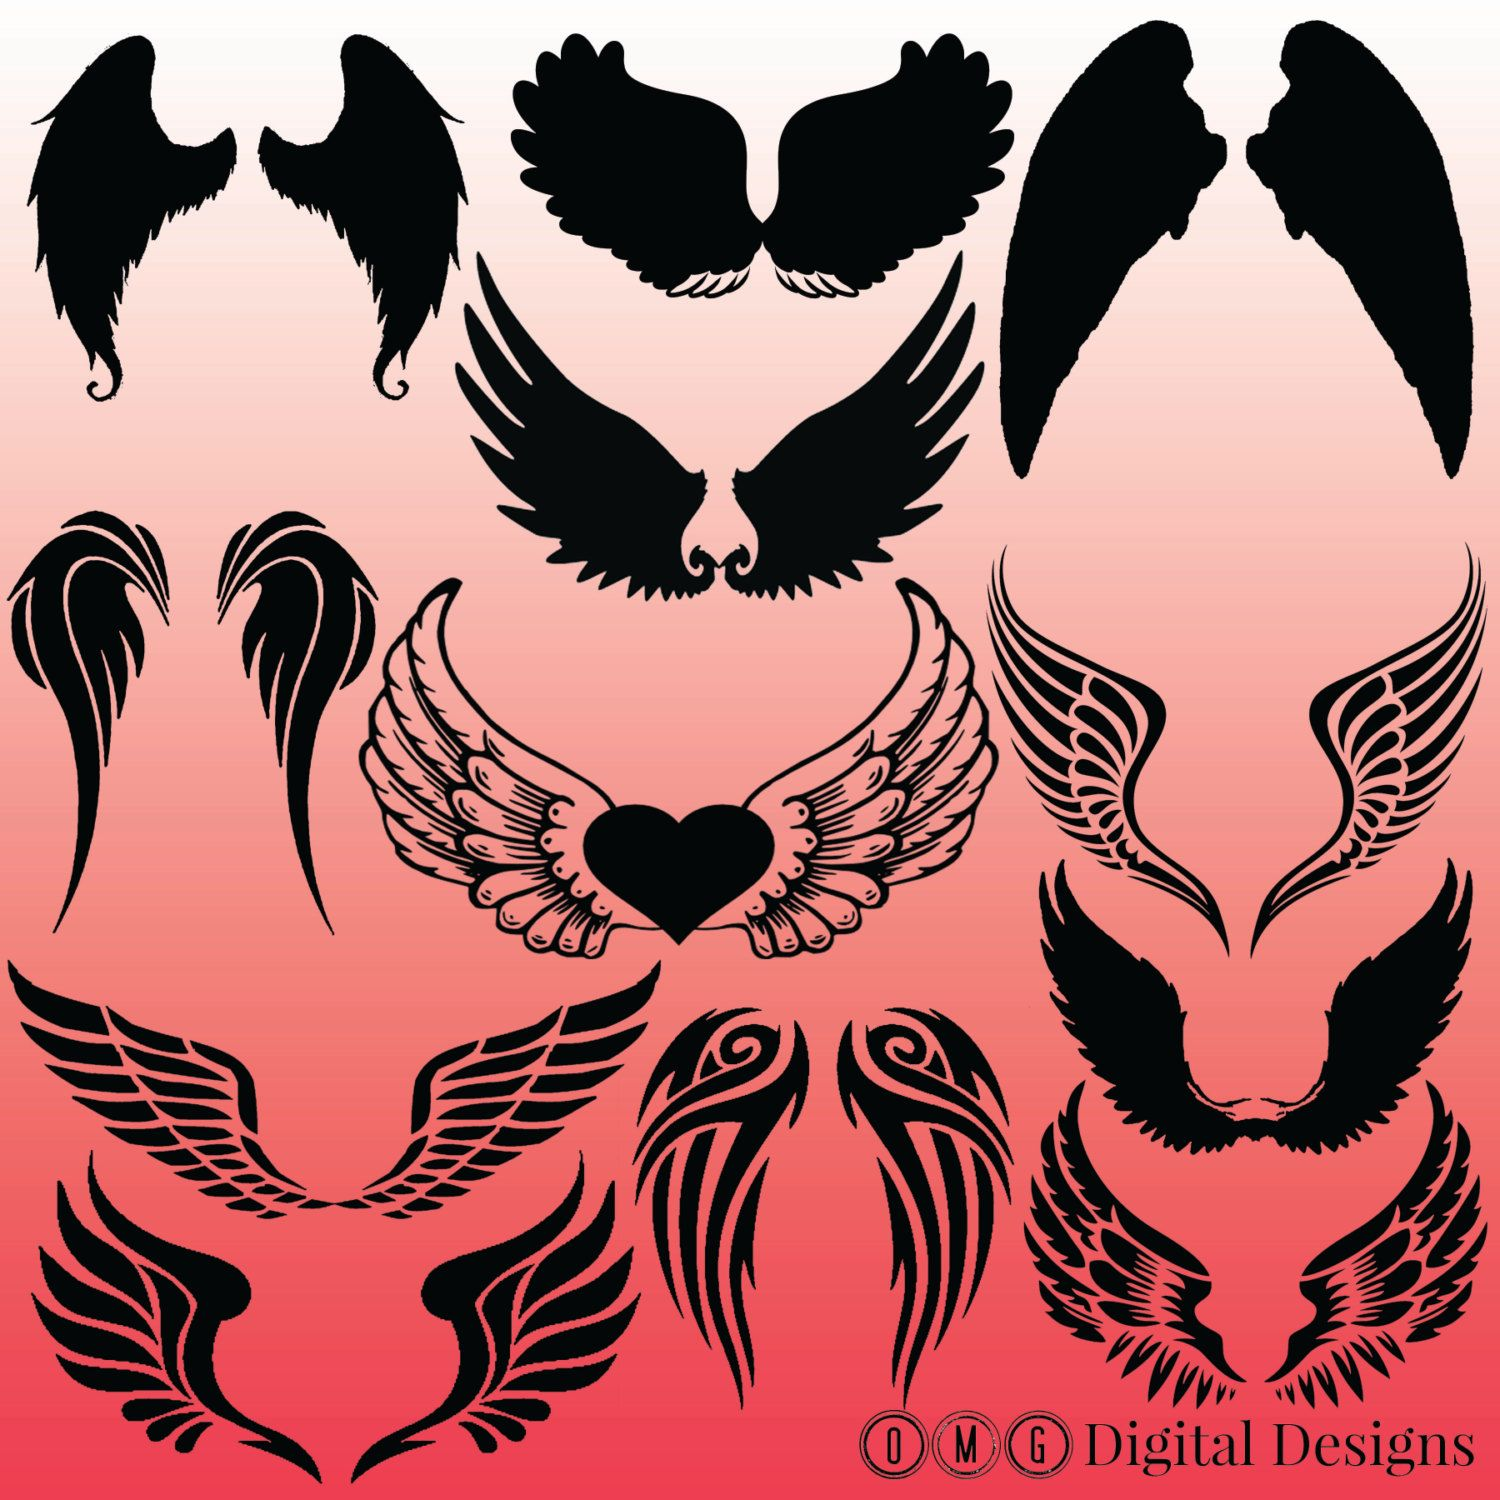 12 Angel Wings Silhouette Images, Digital Clipart Images, Clipart ...